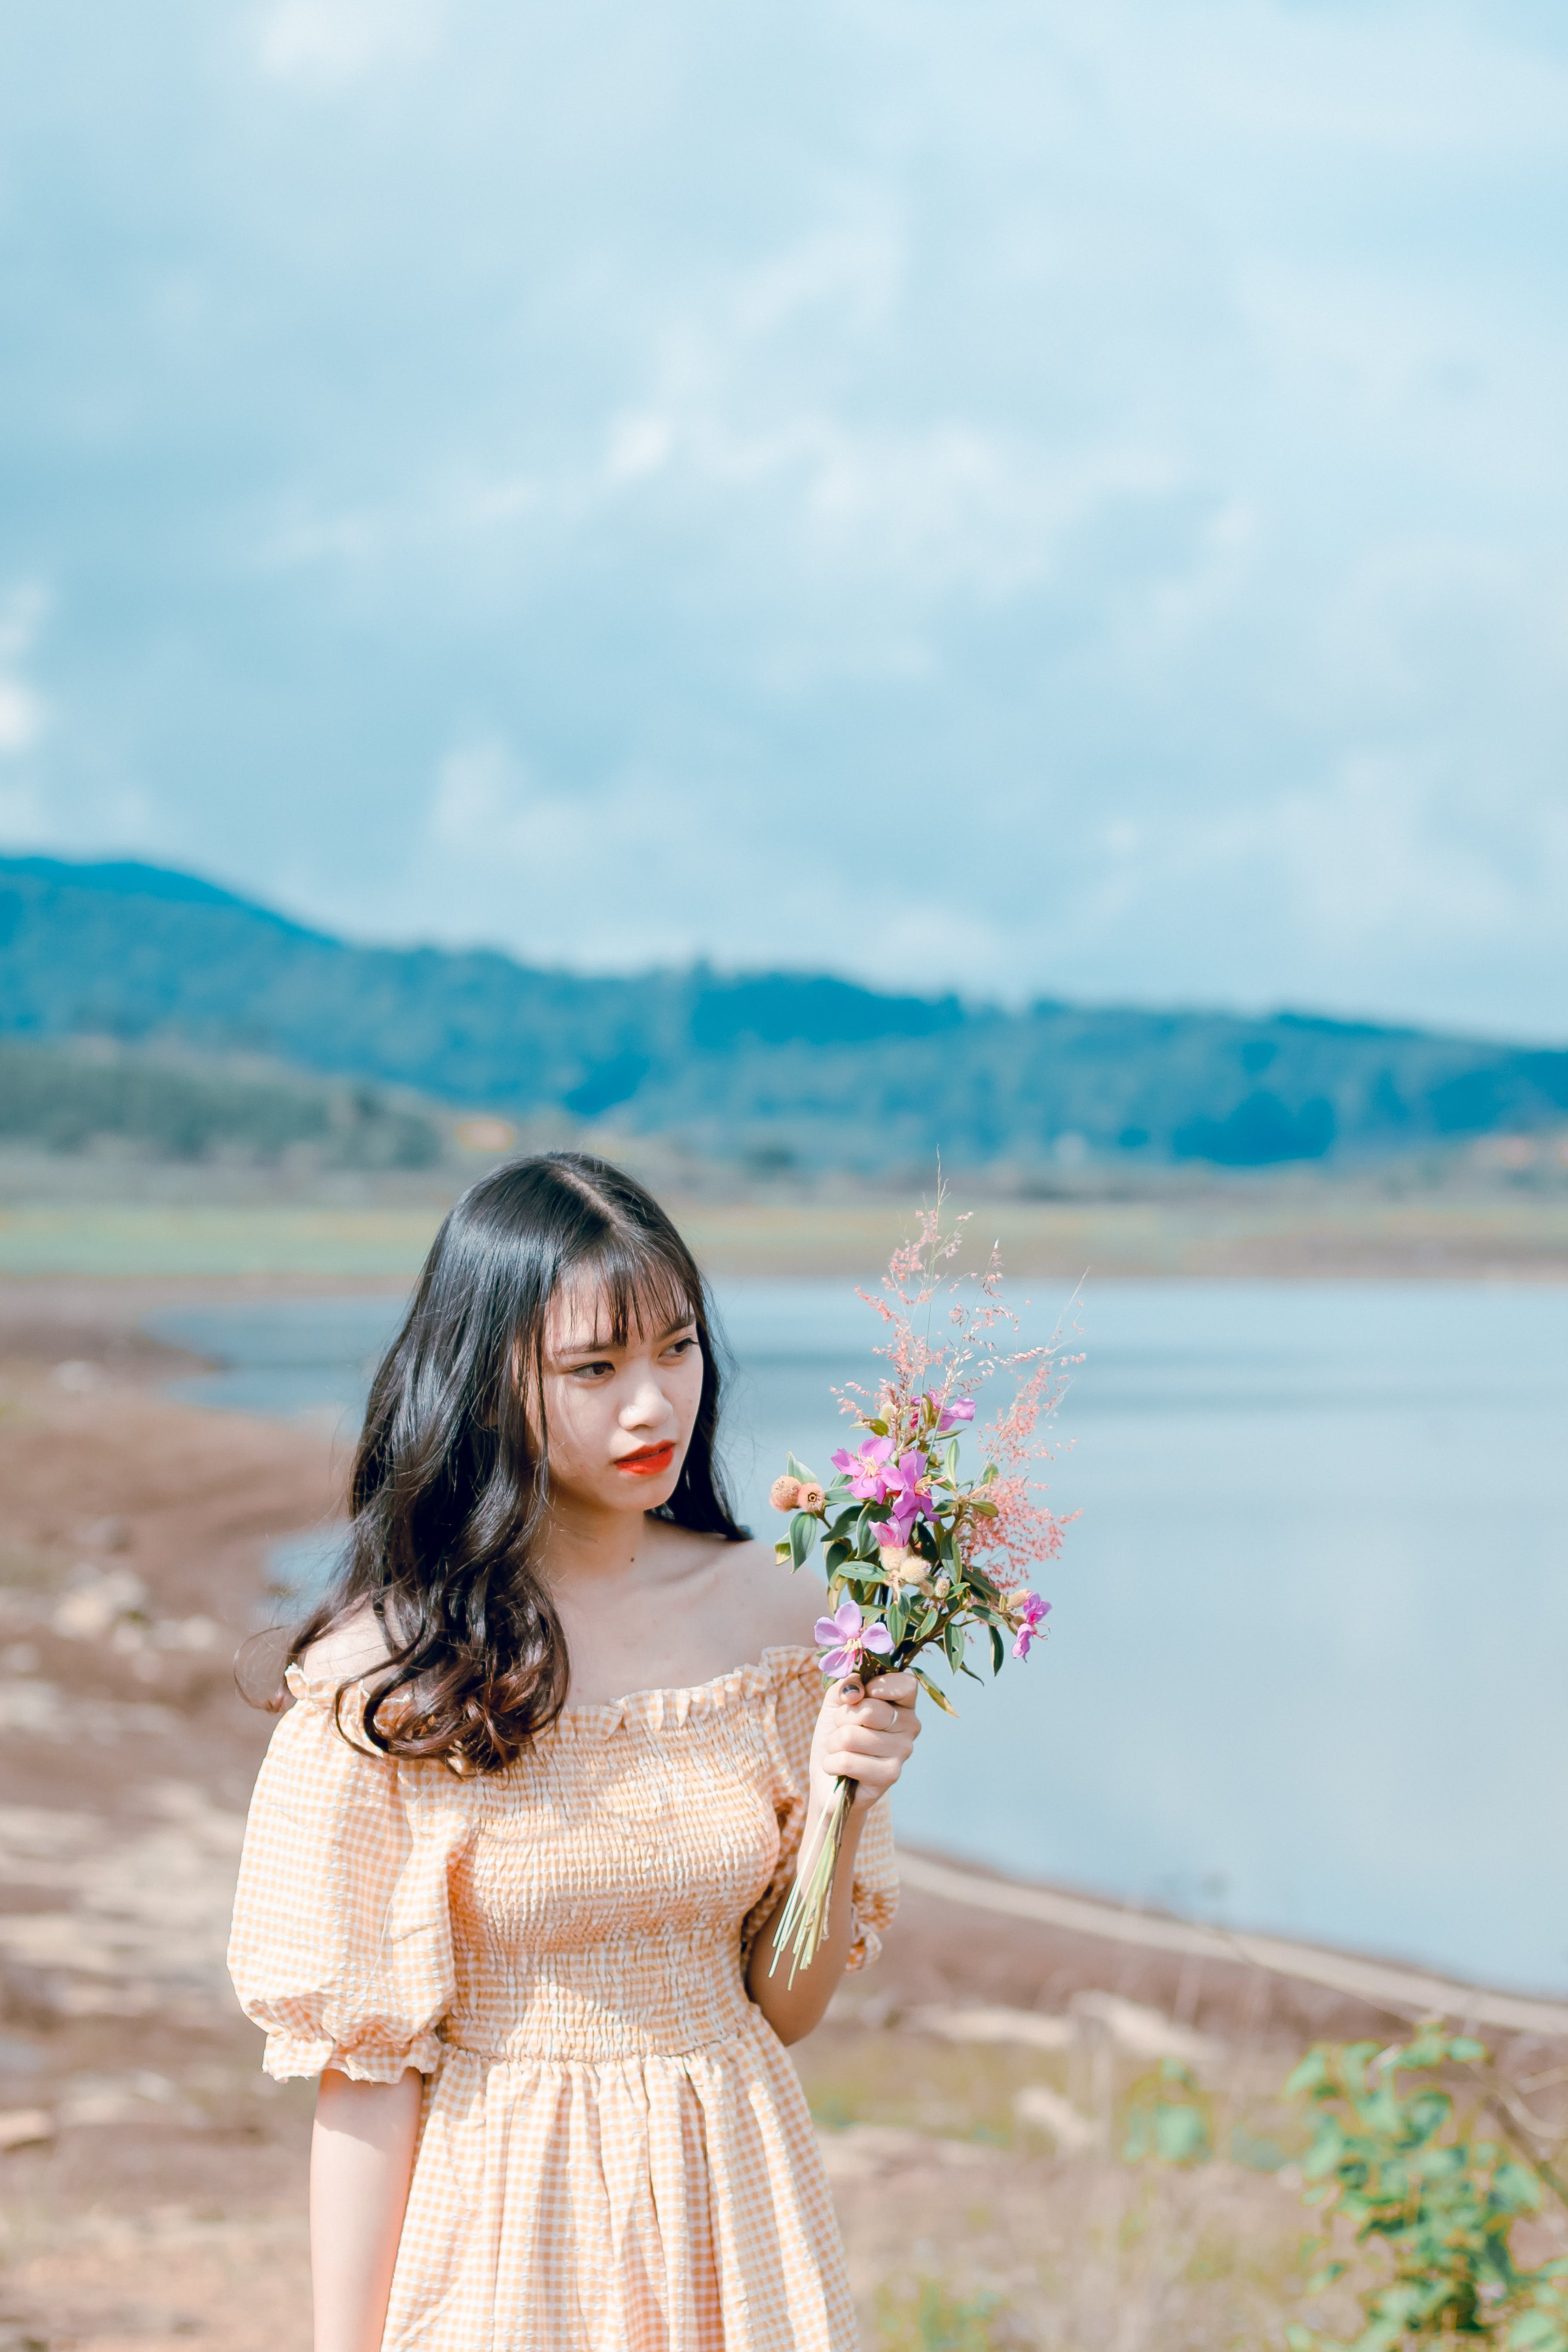 Photography of a Woman Holding Flowers